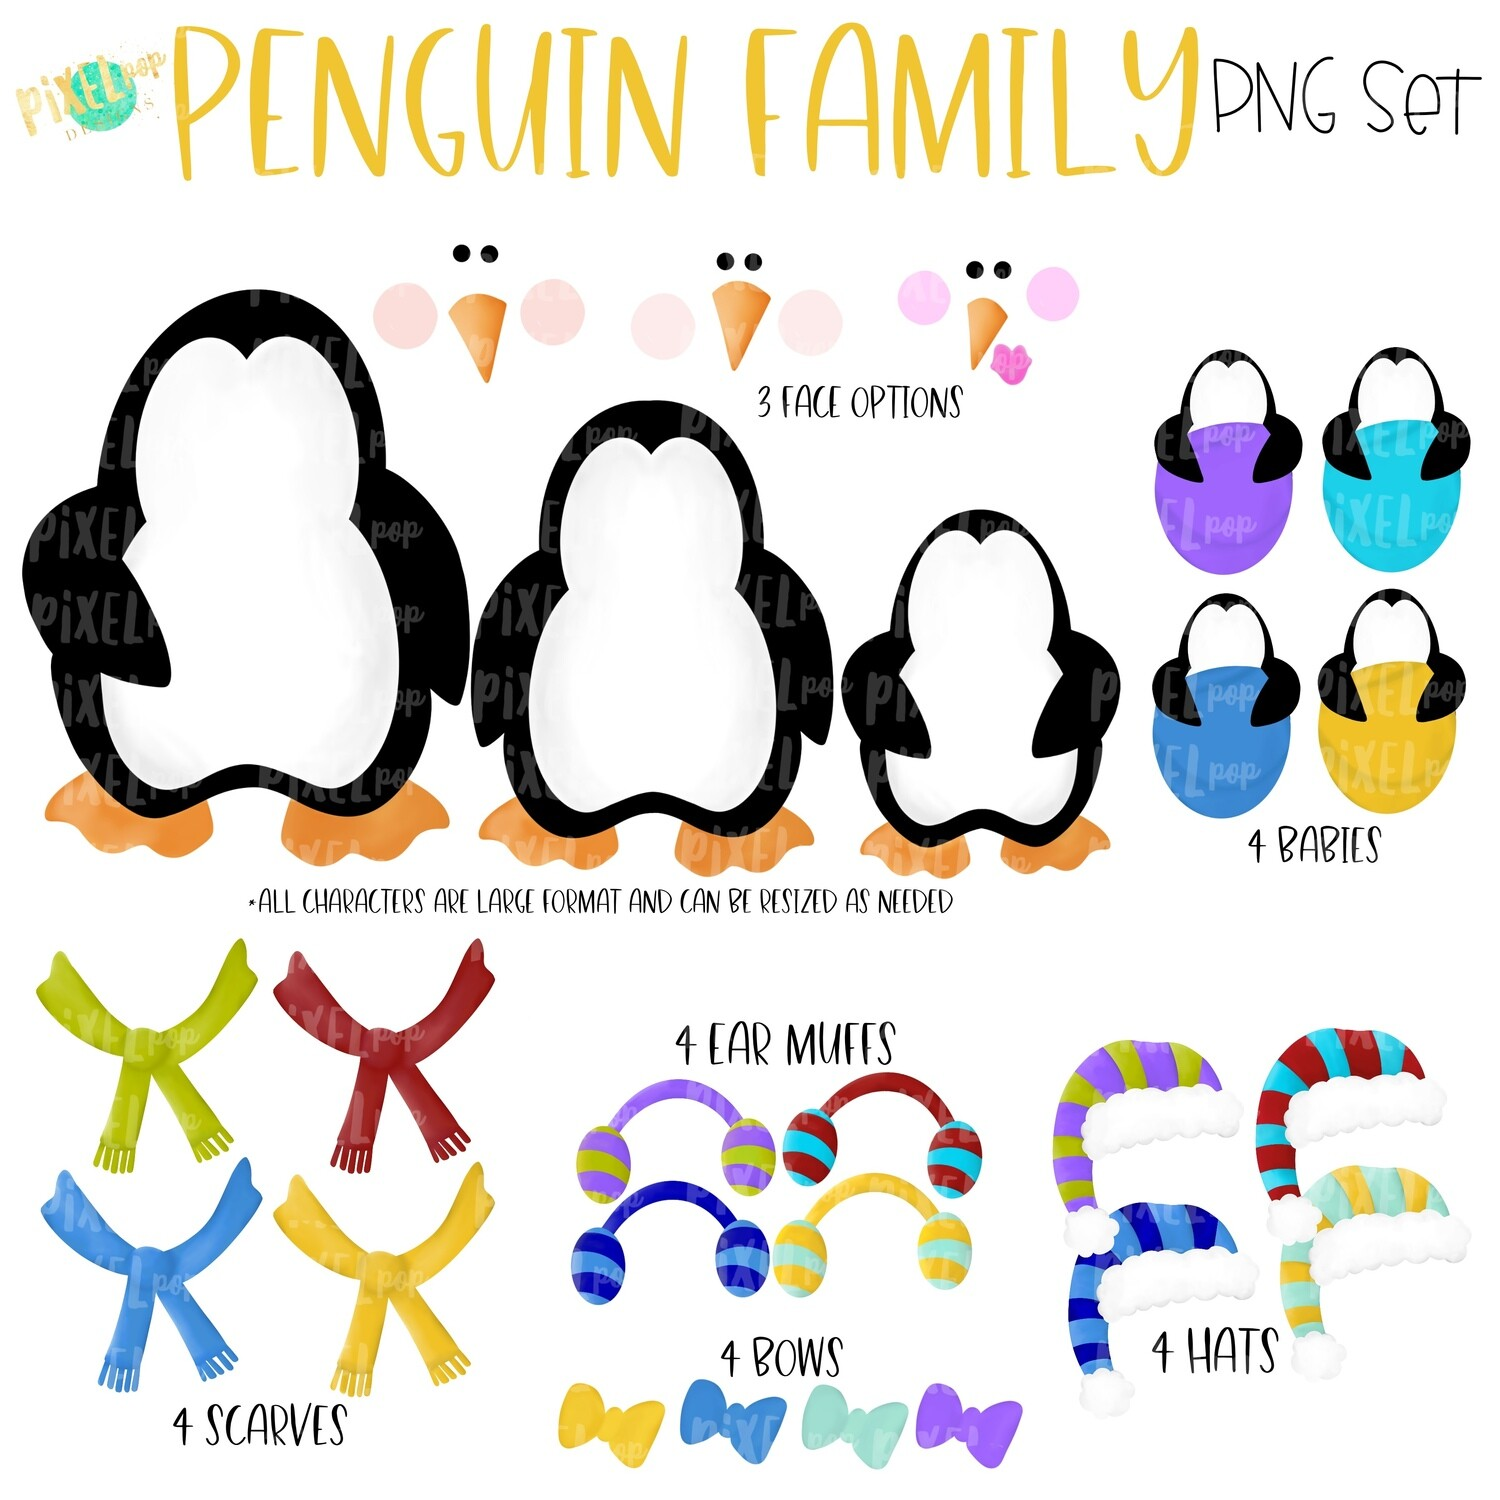 Penguin Family PNG Set with Accessories | Penguin Ornament Images | Christmas PNG | Penguin Design | Sublimation Art |  | Printable